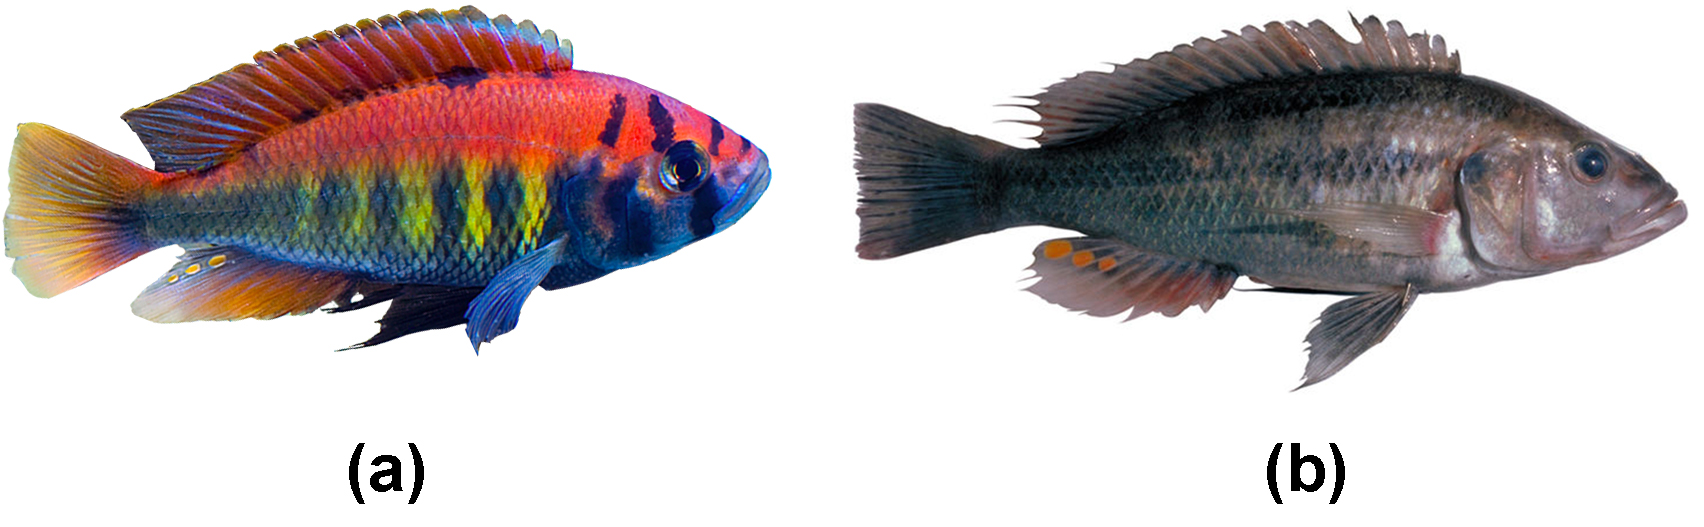 photo a shows a brilliantly colored rainbow fish. Photo b shows a duller drab grey fish with a few spots of orange coloring.